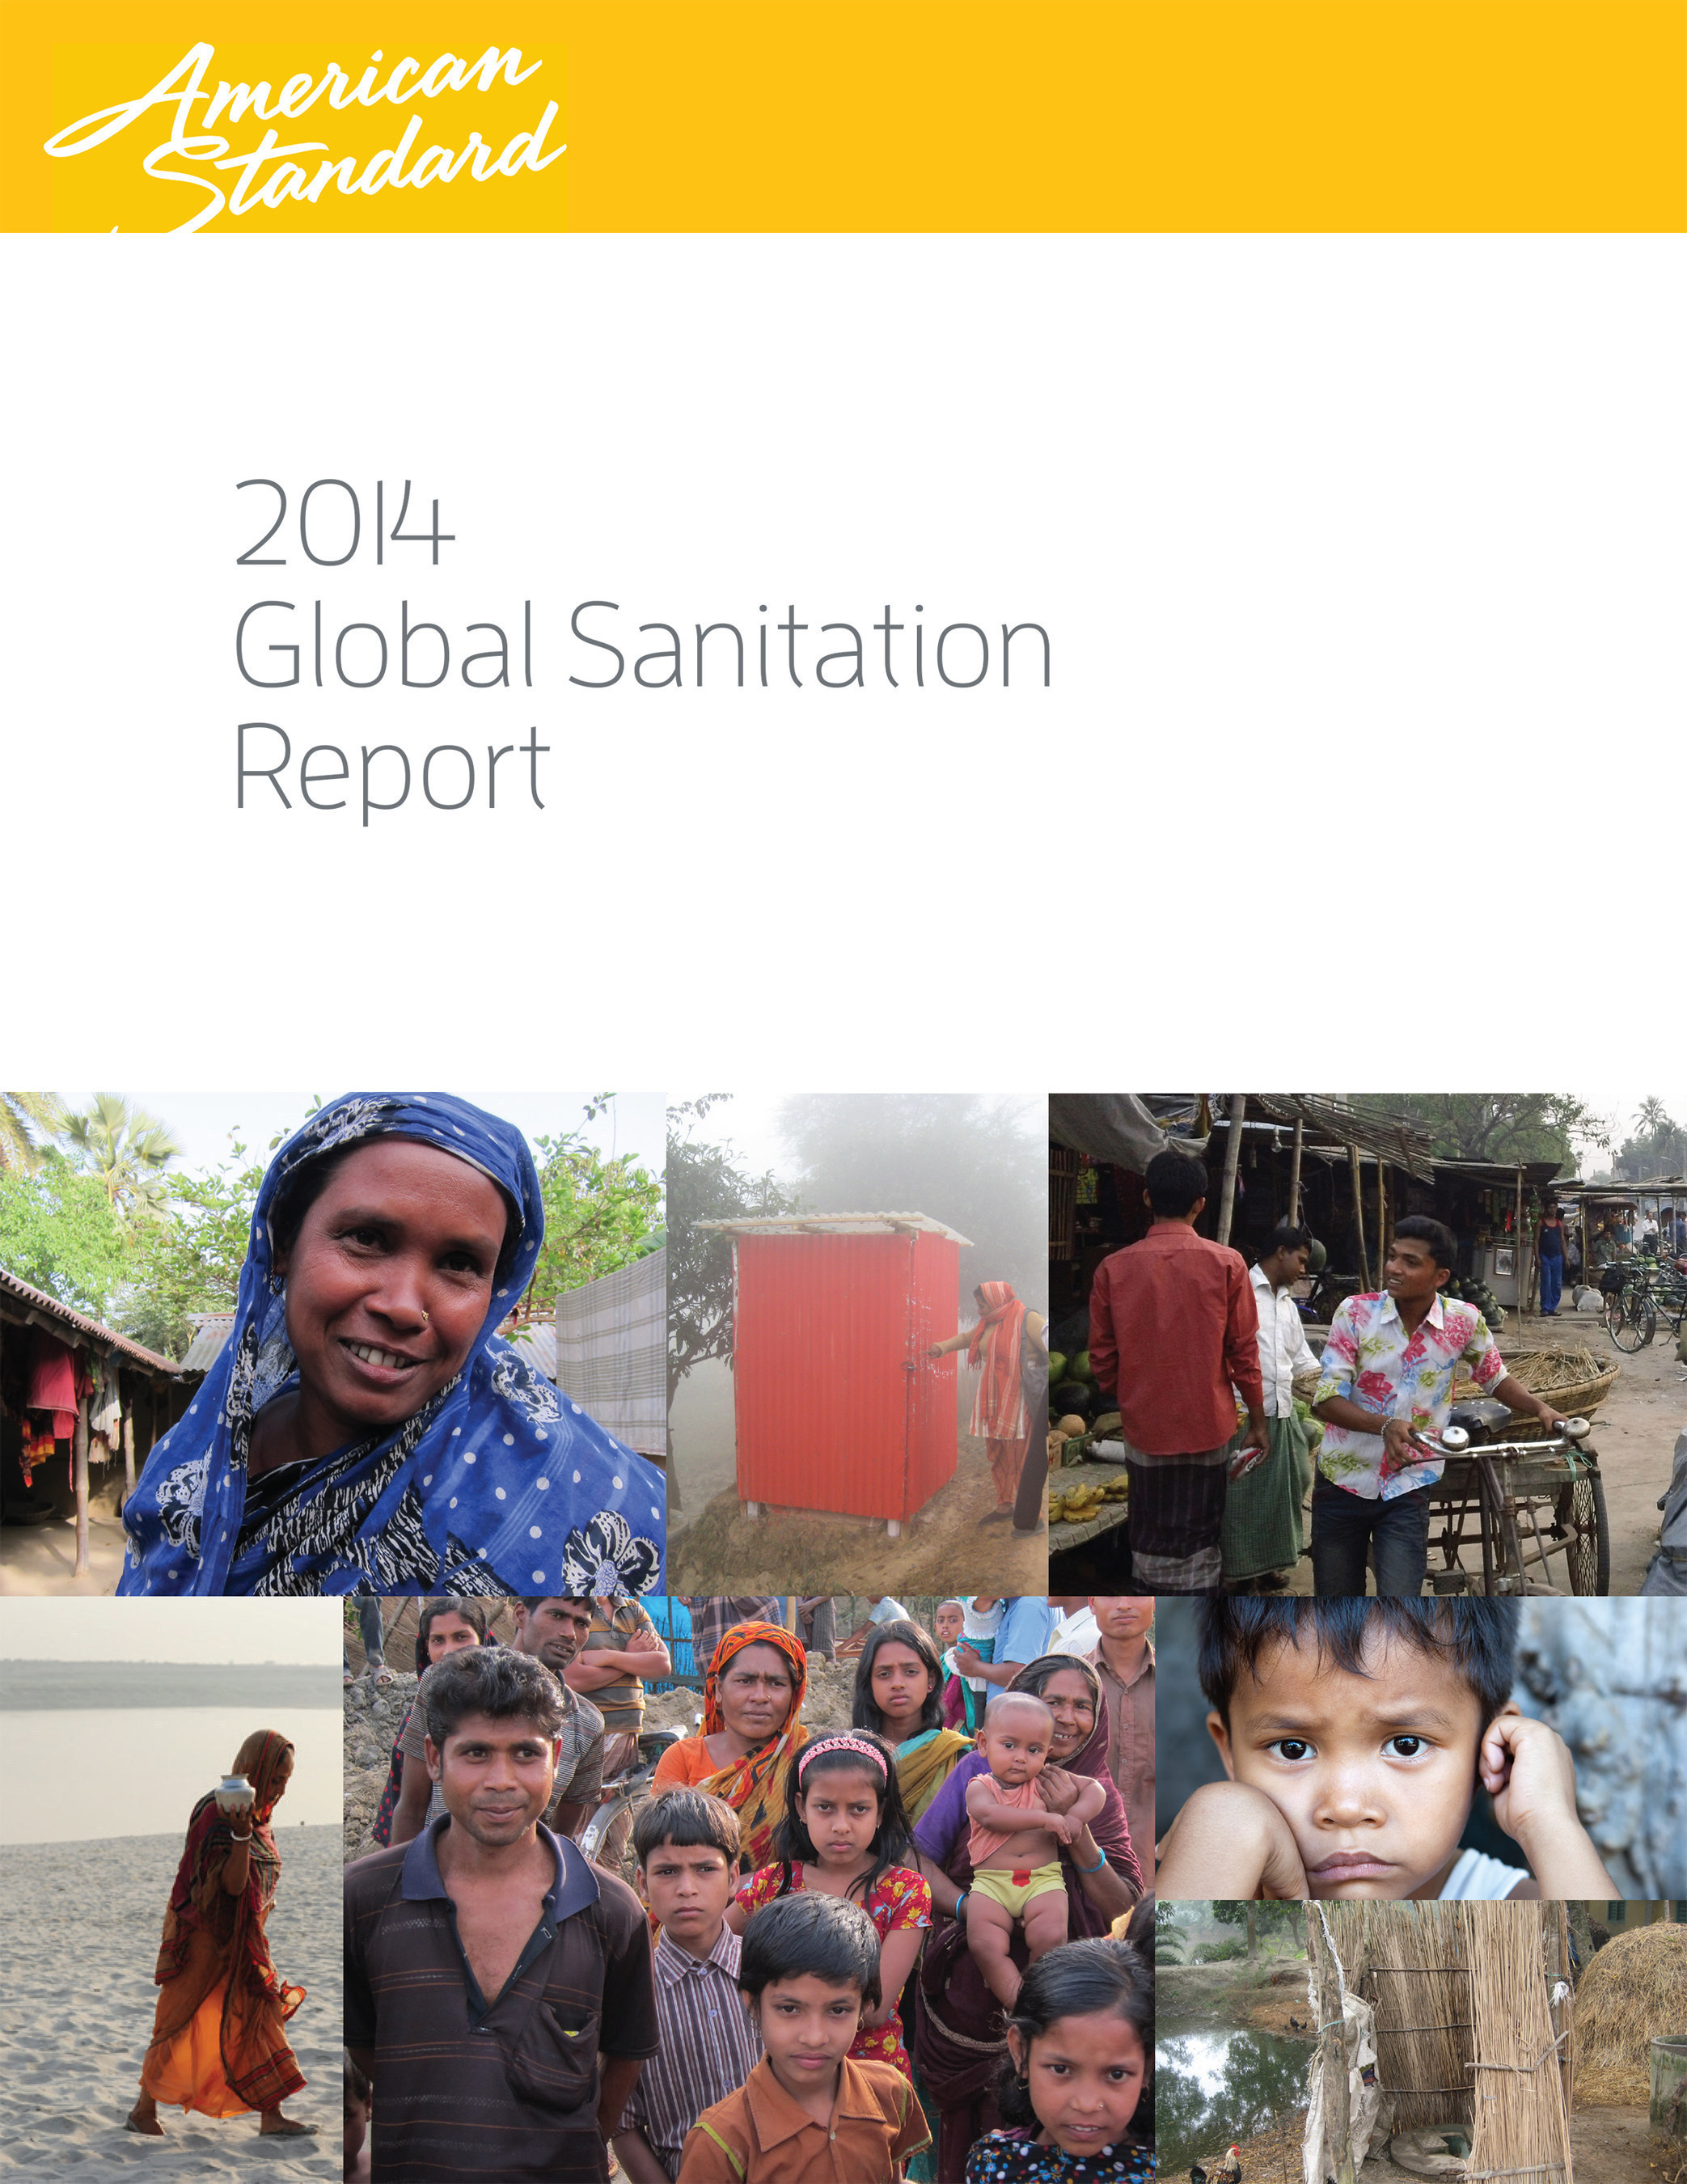 On World Toilet Day (November 19), American Standard Brands issues a Global Sanitation Report featuring the latest information on the lack of safe sanitation facilities plaguing nearly 40 percent of the world population.